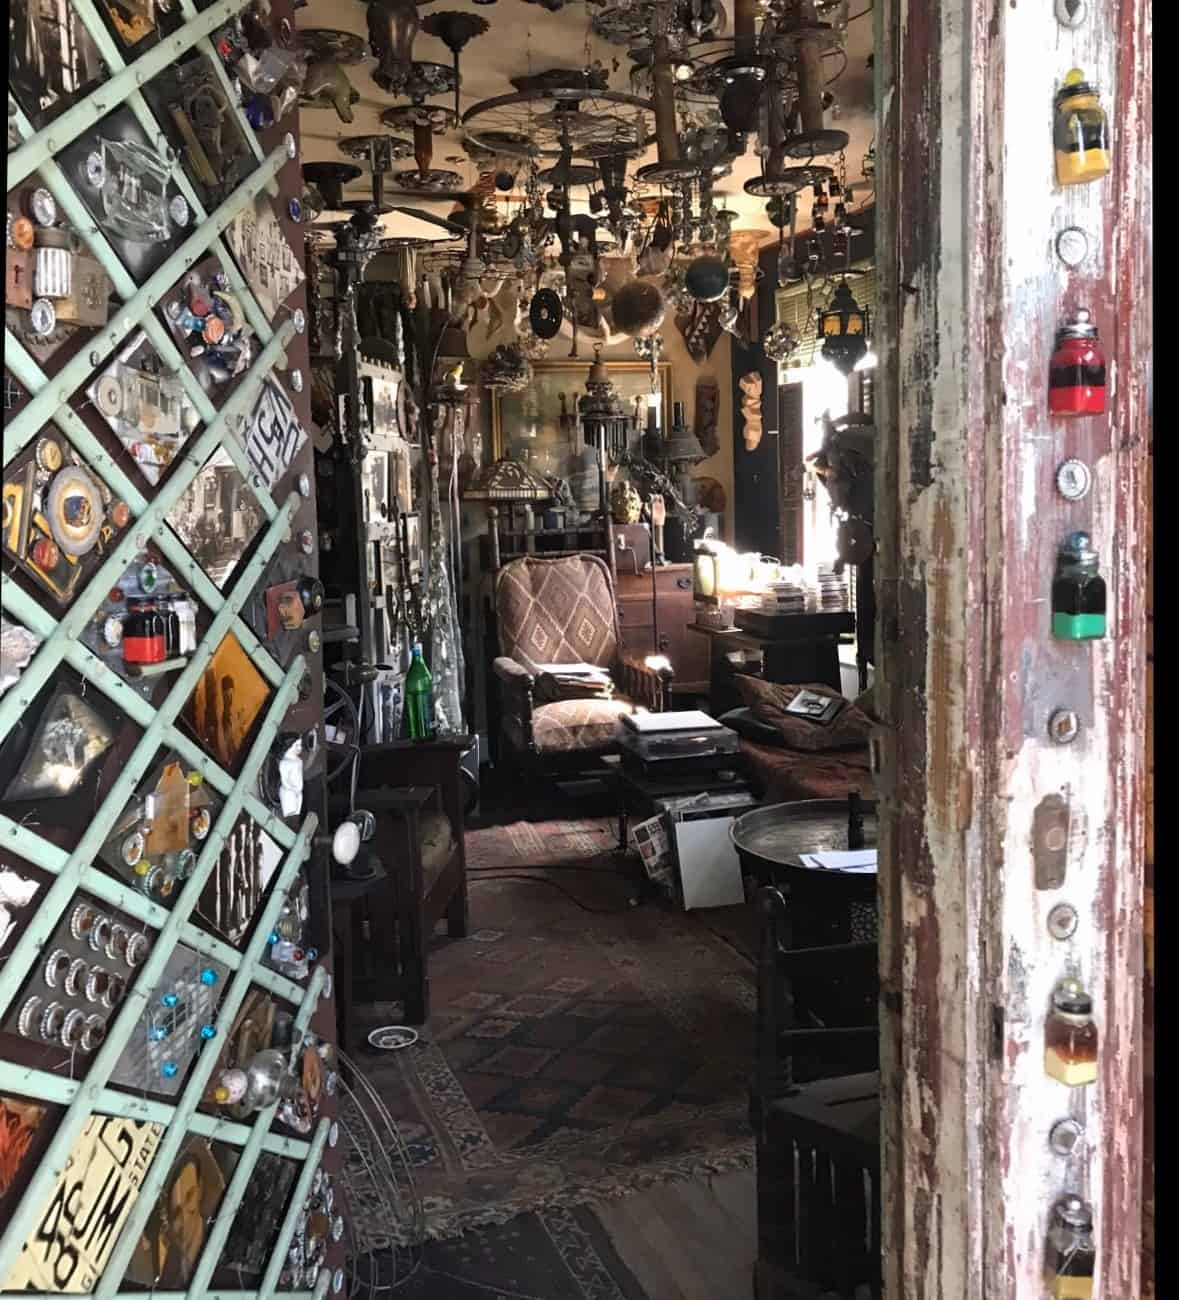 Inside a room of the art house, the walls and ceiling are covered with pieces of metal, glass, and other things